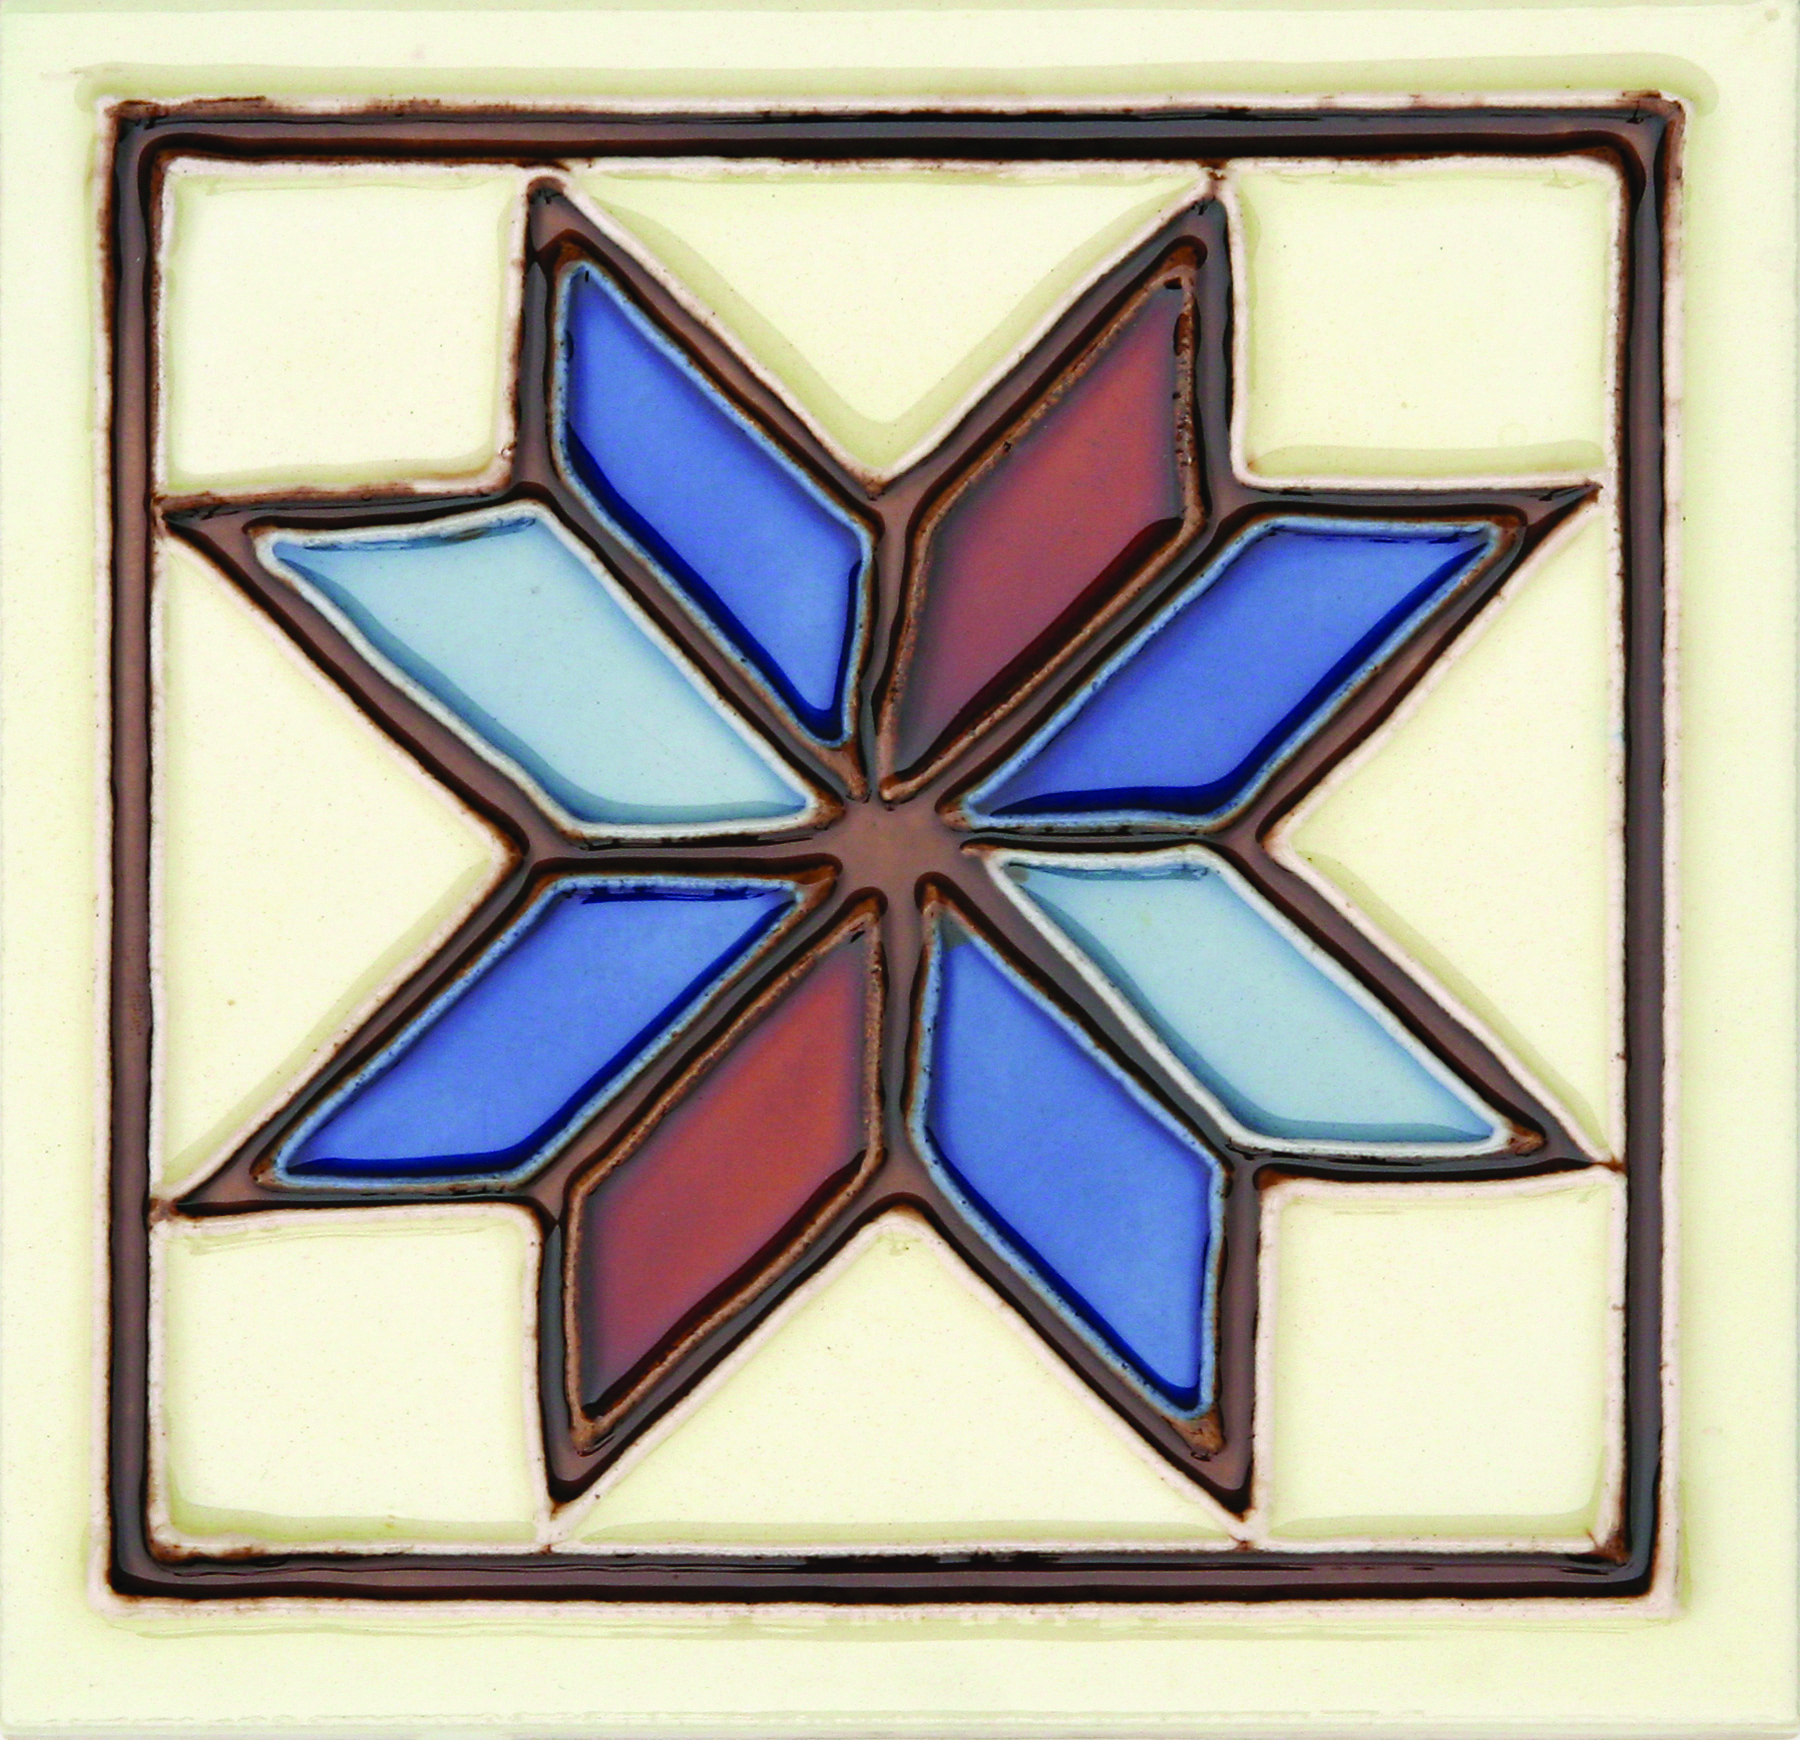 Hand-Painted Ceramic Glazed Wall Tile in Estrella Hand-Painted Ceramic Glazed Wall Tile in Estrella 0